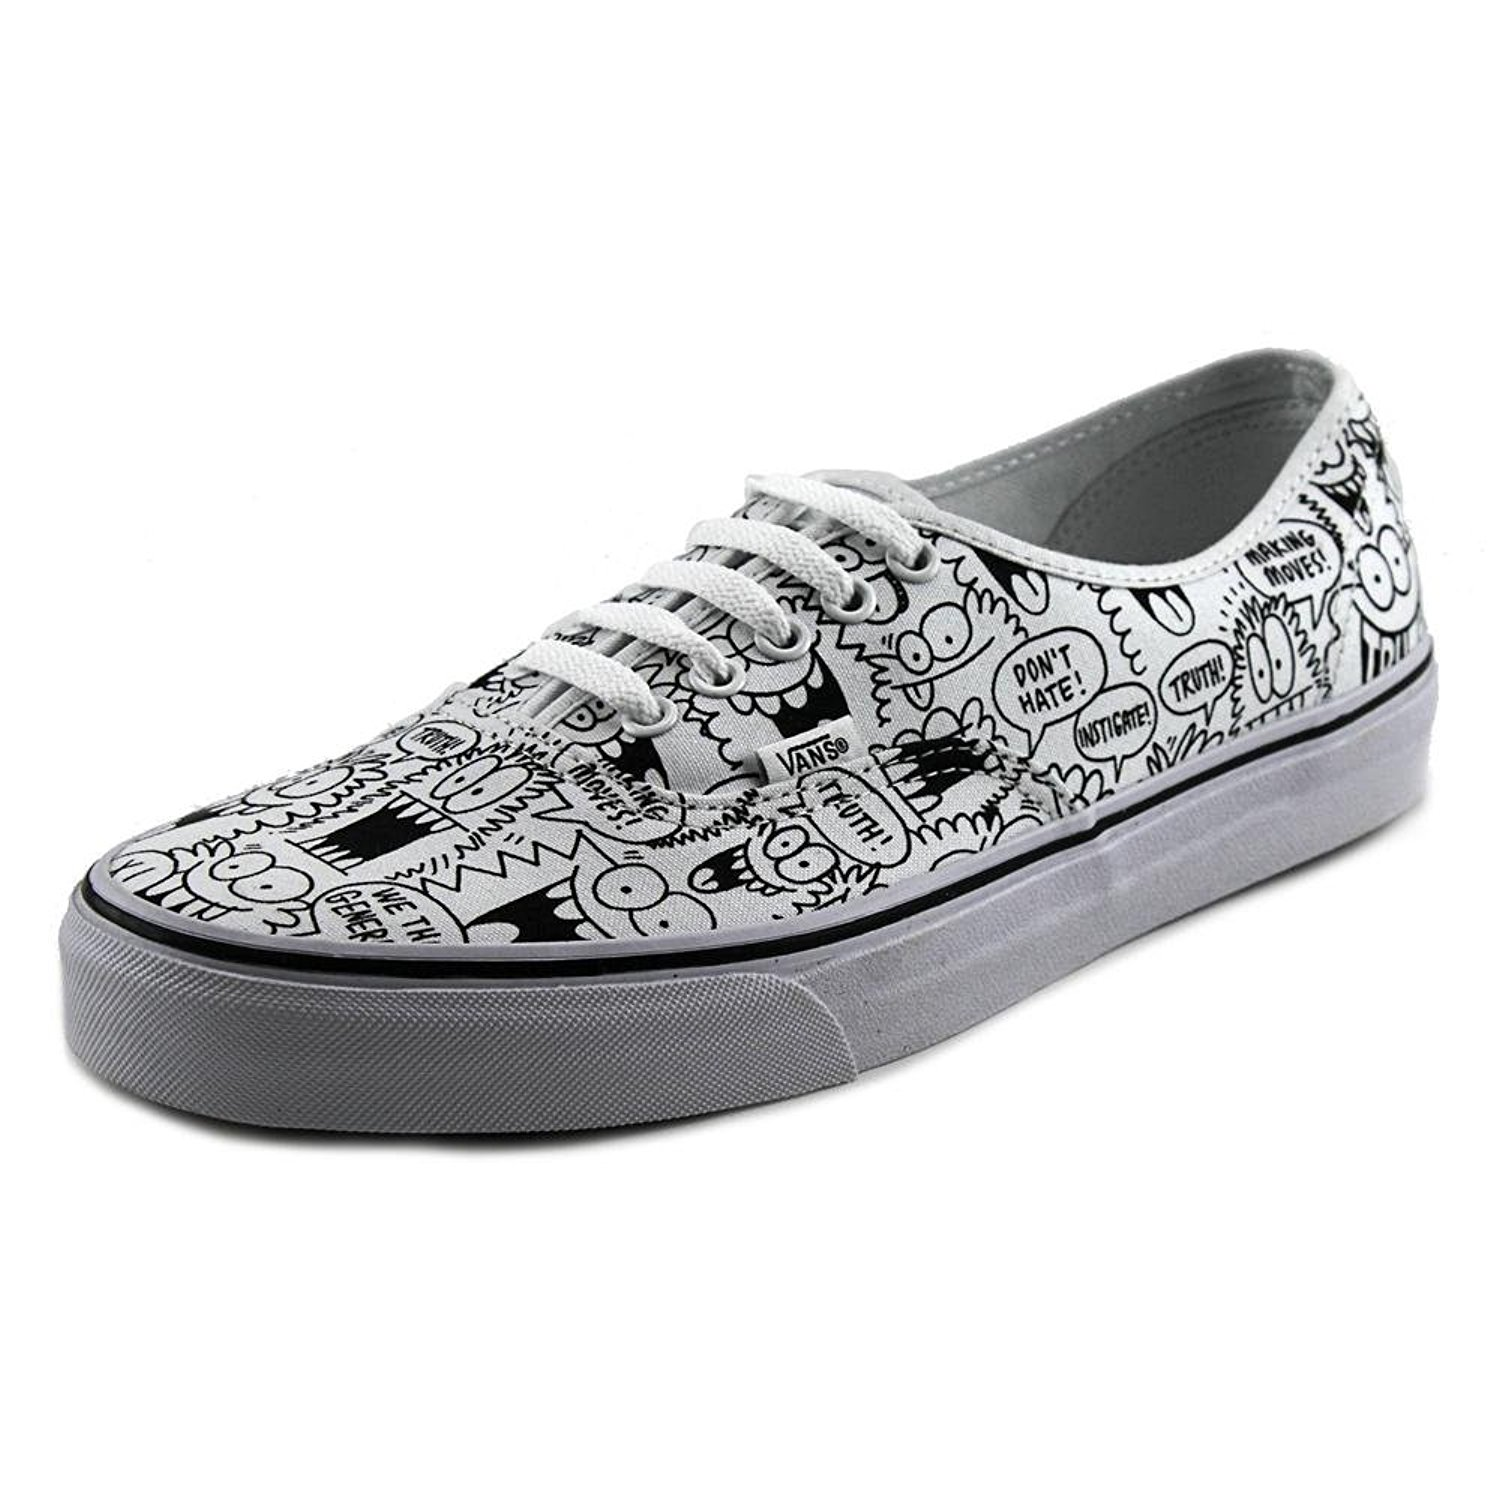 be0daacfe8 Vans - Vans Unisex Authentic Truth Kevin Lyons Skate Shoes-White Black -  Walmart.com